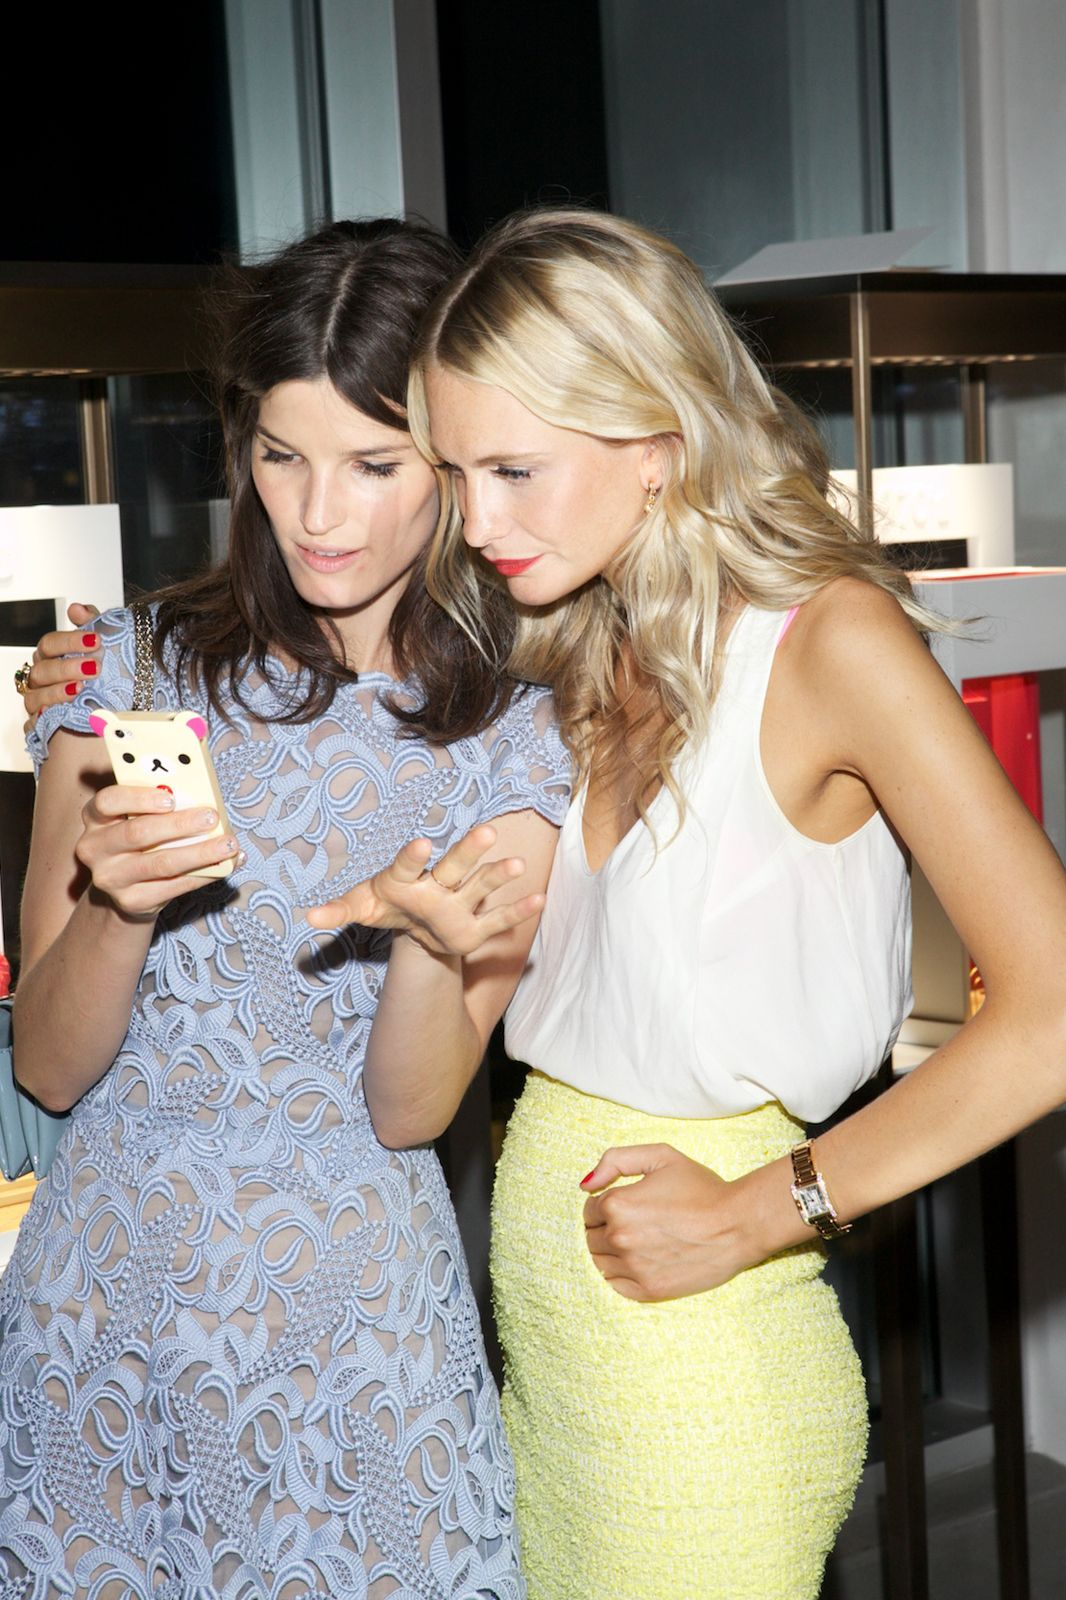 This Cartier Dinner Felt Worthy Of The Tank Anglaise (& Poppy!) #refinery29 http://www.refinery29.com/cartier-tank-anglaise-party#slide7 Hanneli pulls Poppy into her cellie snaps. Photographed by Julie Skarratt/ Courtesy of Cartier